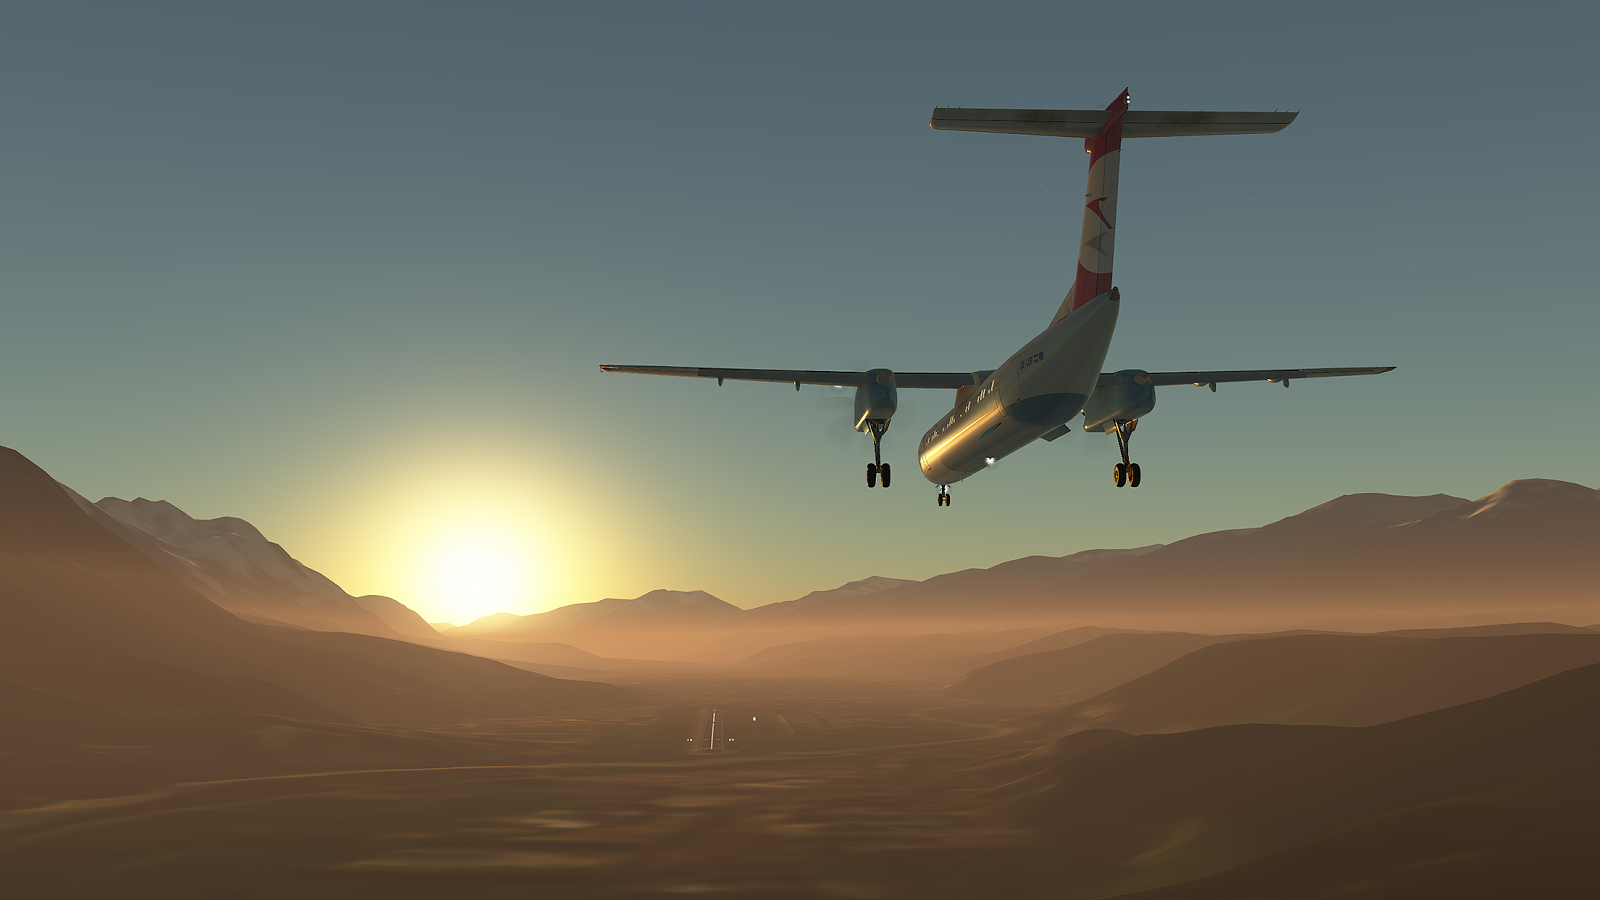 Infinite Flight - Flight Simulator Screenshot 1